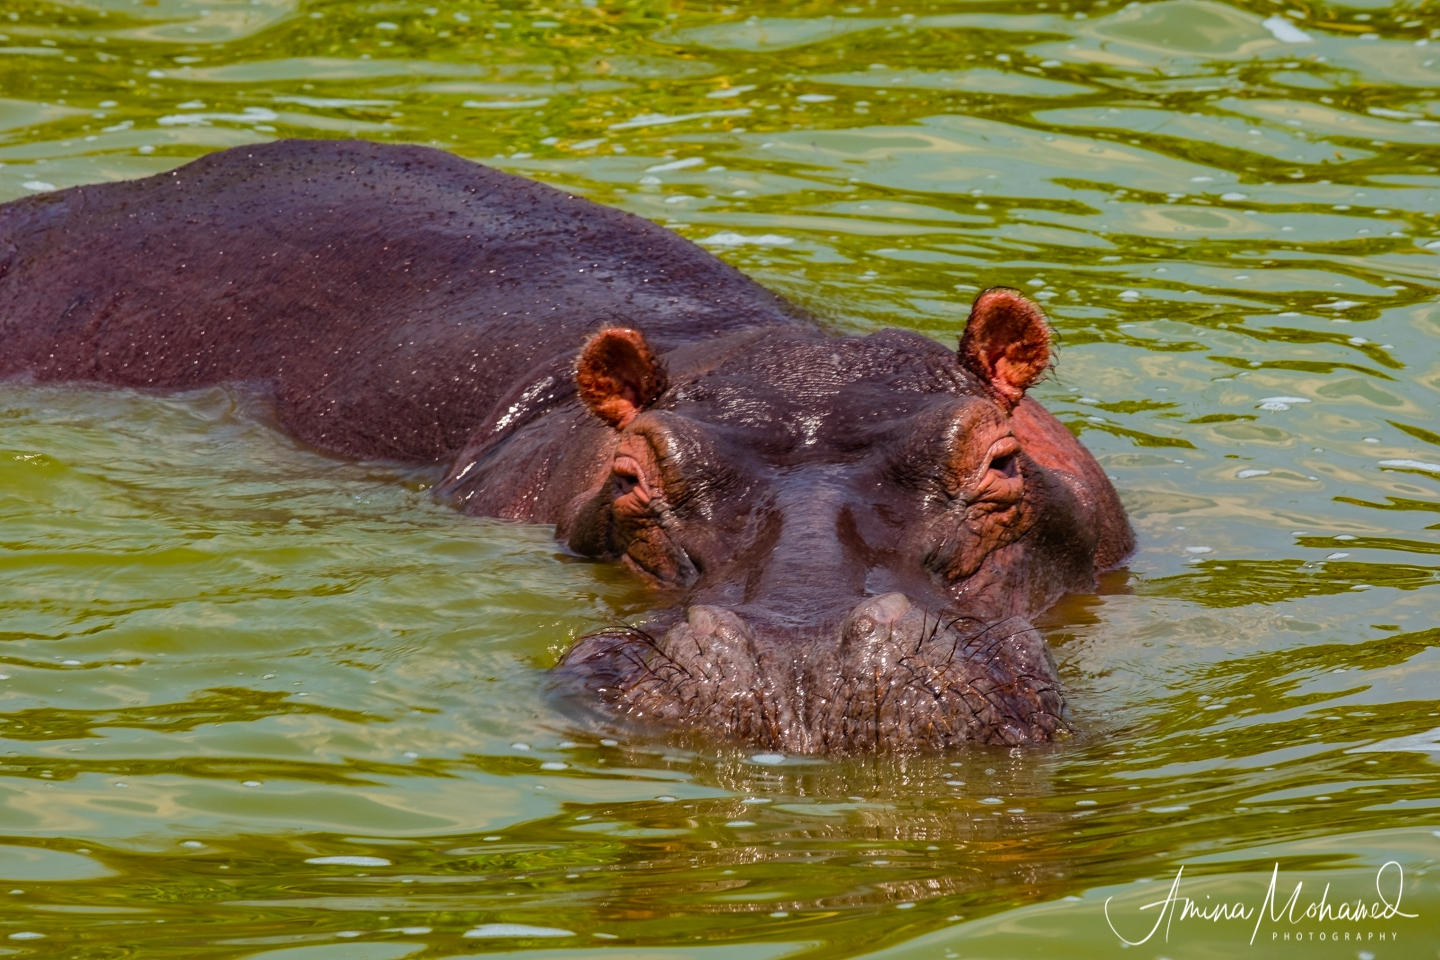 Hippo wading in the Kazinga Channel @Amina Mohamed Photography